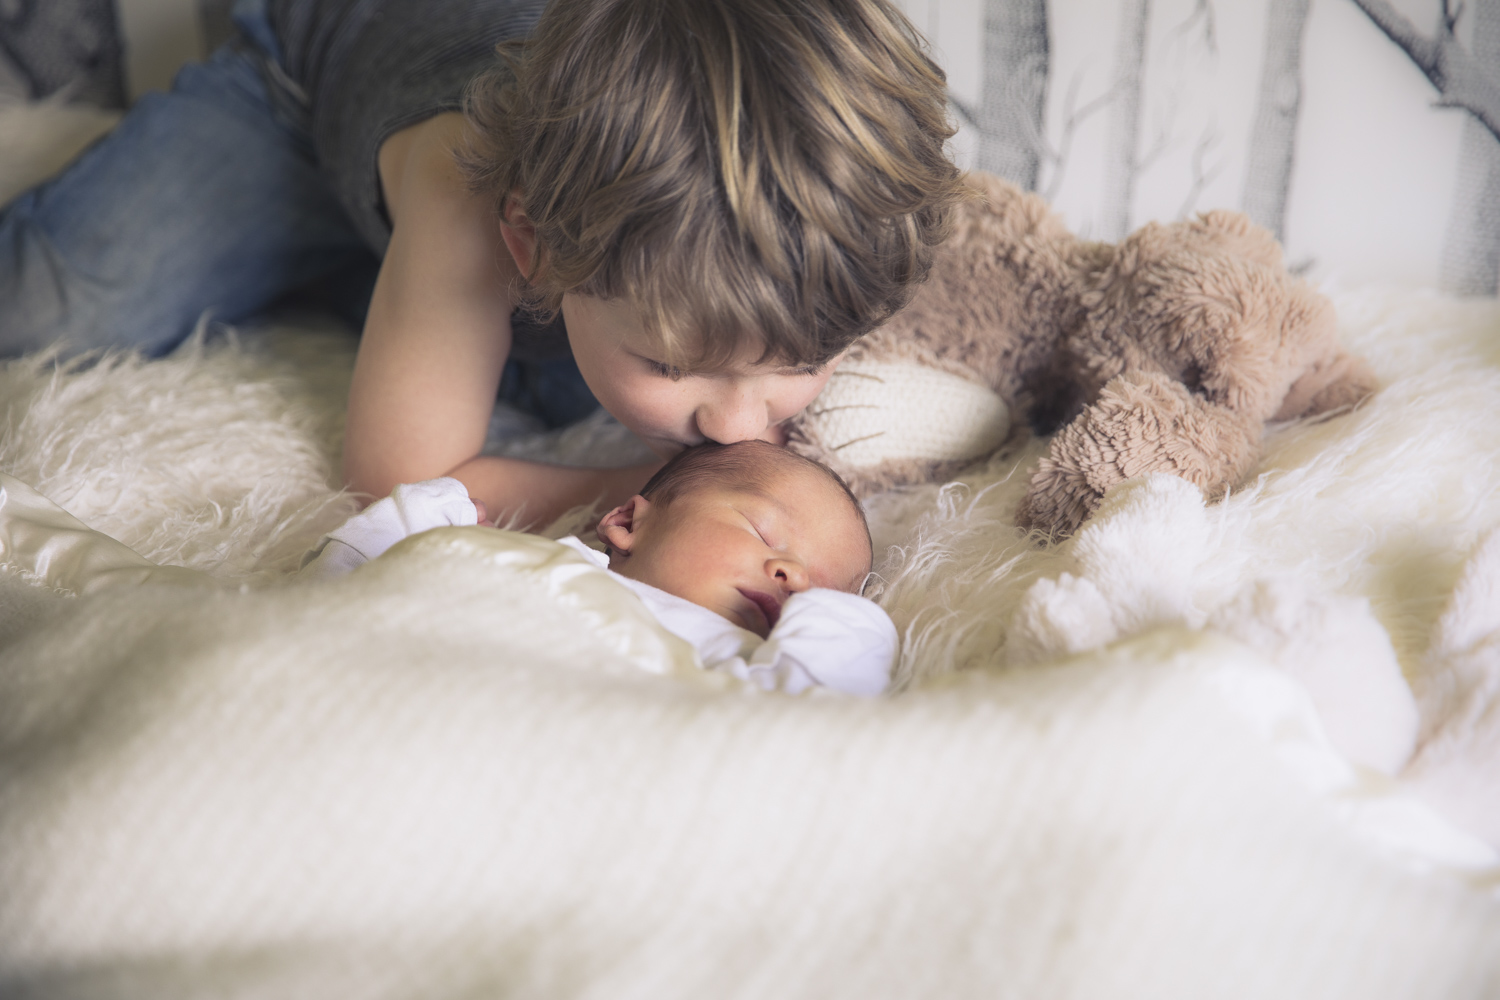 hawke's bay newborn photographers